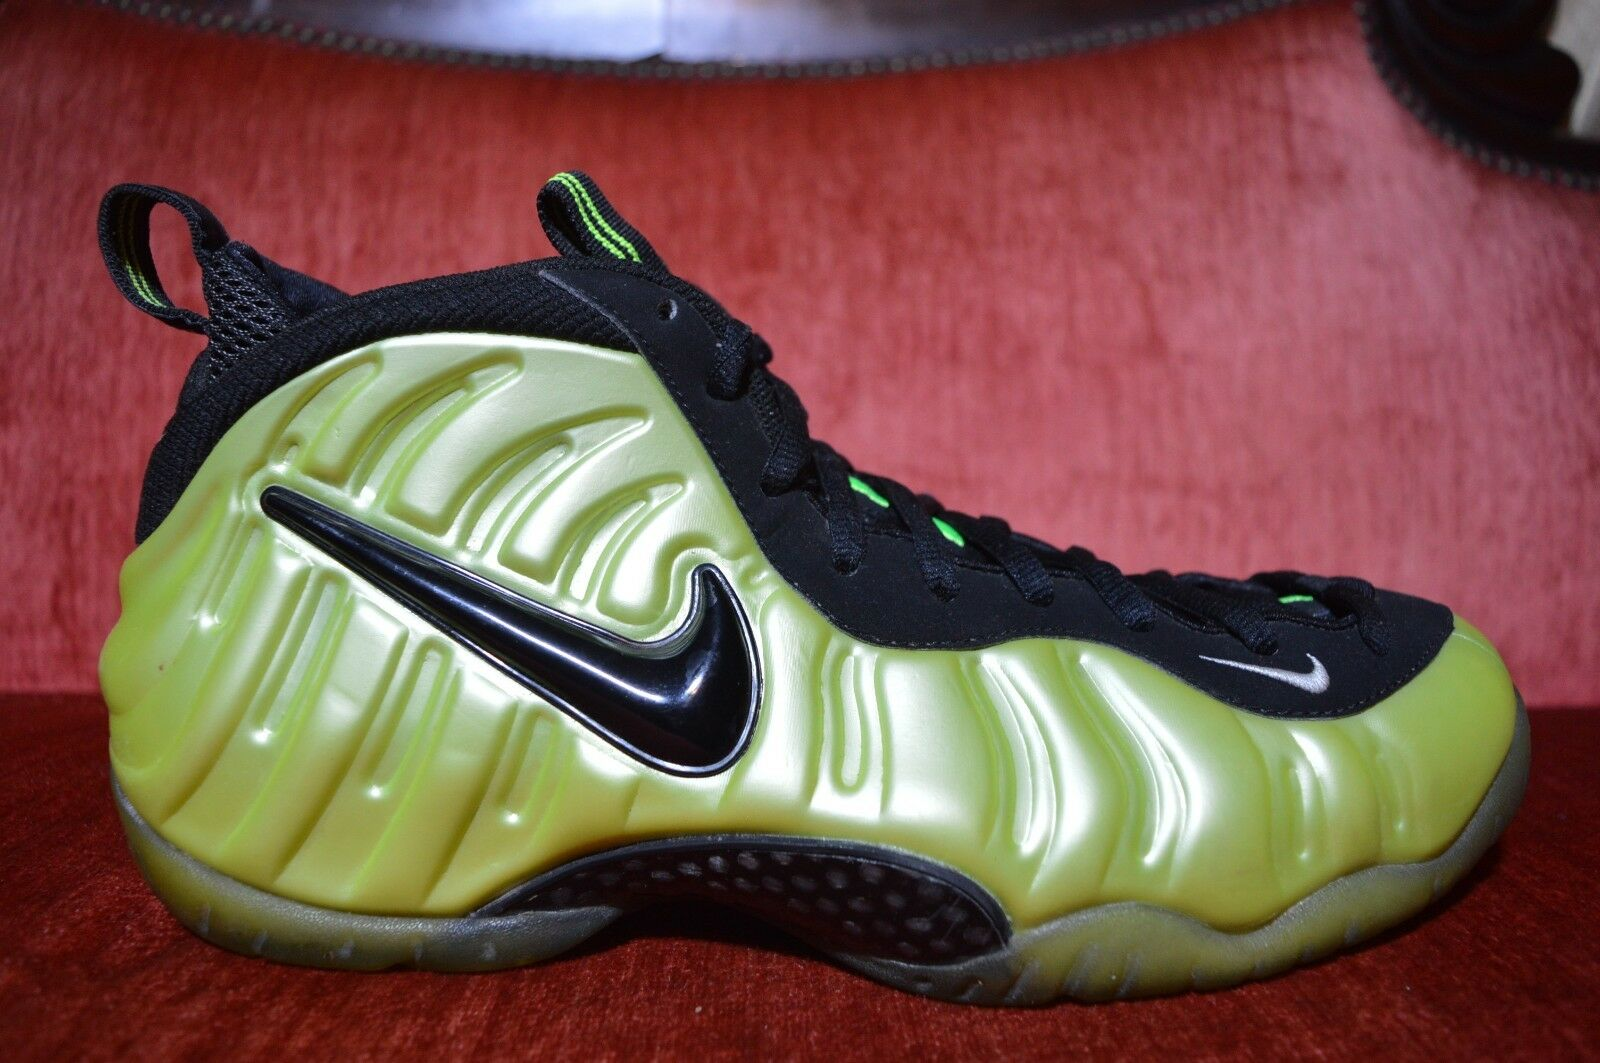 9e302270975 Clean Nike Air Foamposite Pro Electric Green 624041-300 Size 11 ...